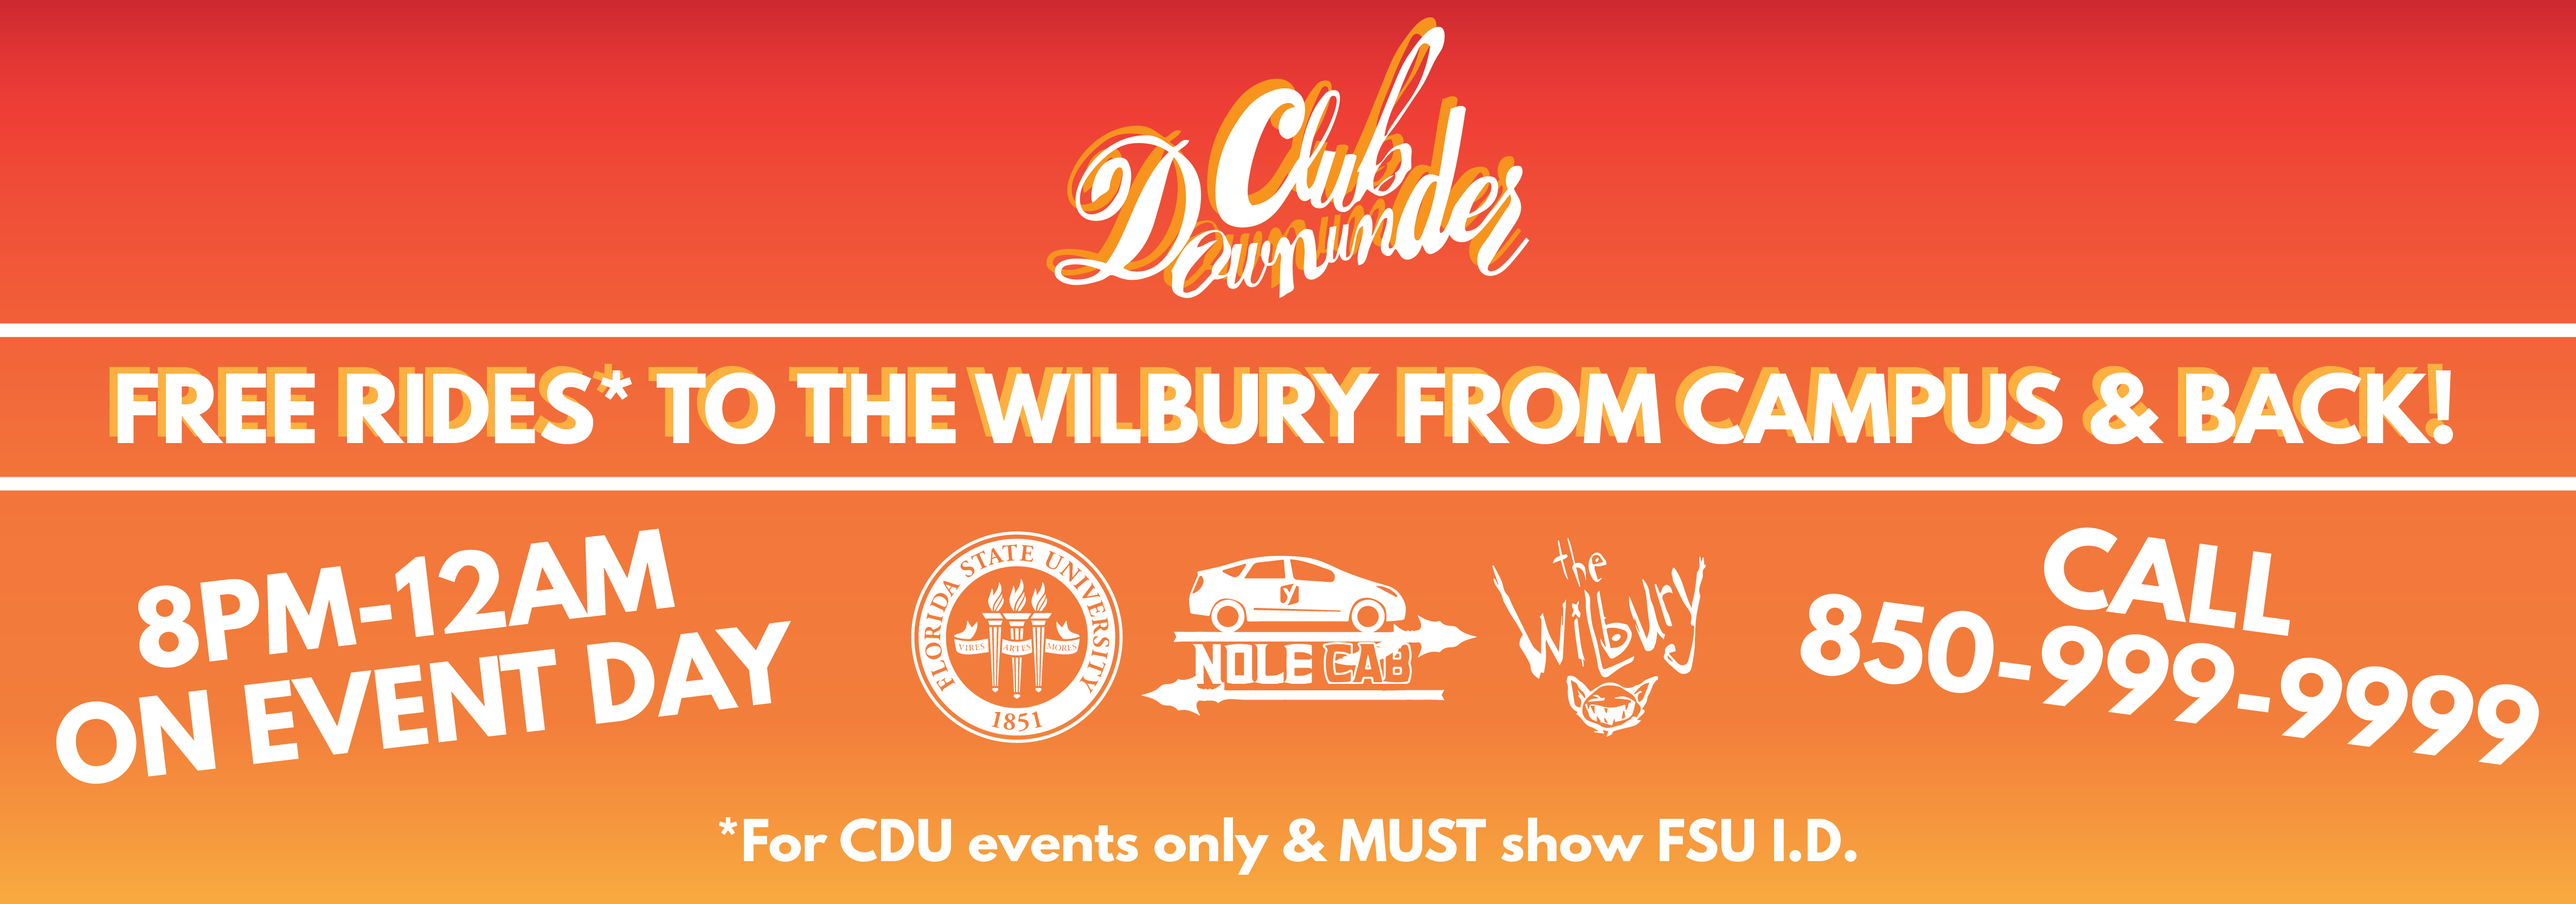 free rides to and from the wilbury call 8509999999